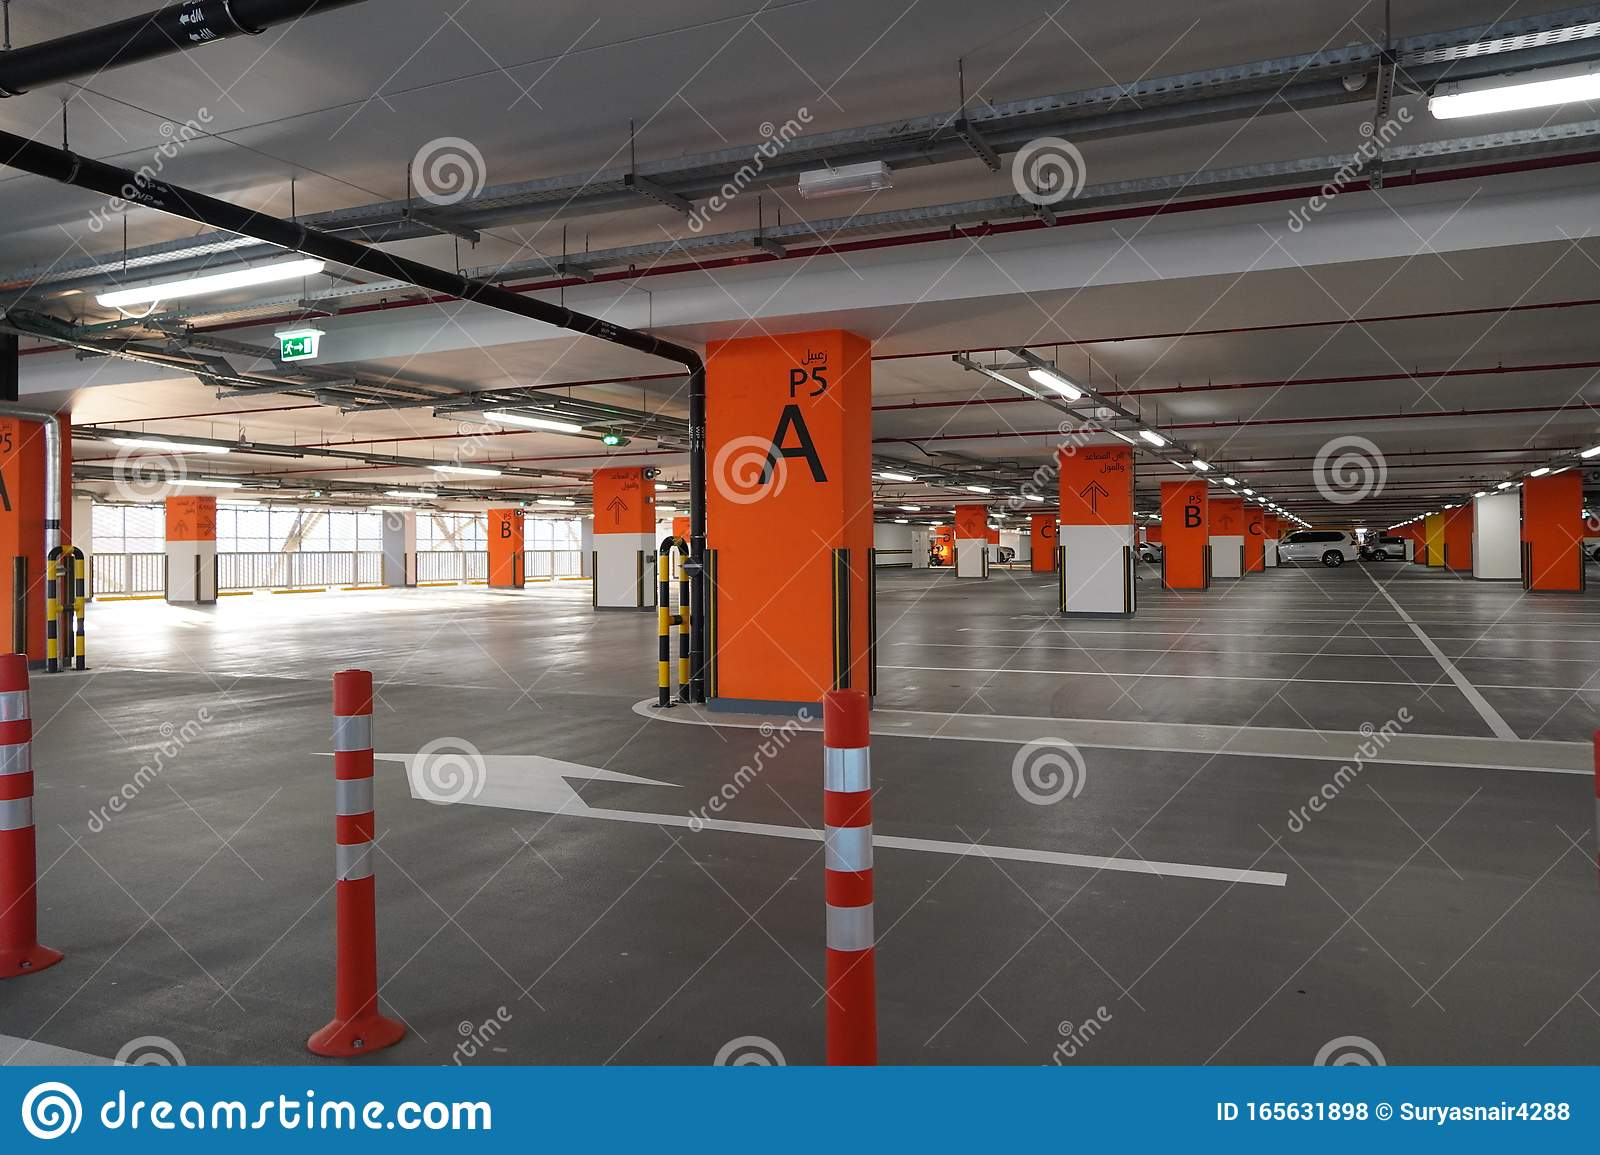 Dubai Uae December 2019 Underground Parking Which Is Almost Empty Empty Garage In Basement Of Office Building Reinforced Editorial Stock Photo Image Of Economy Empty 165631898